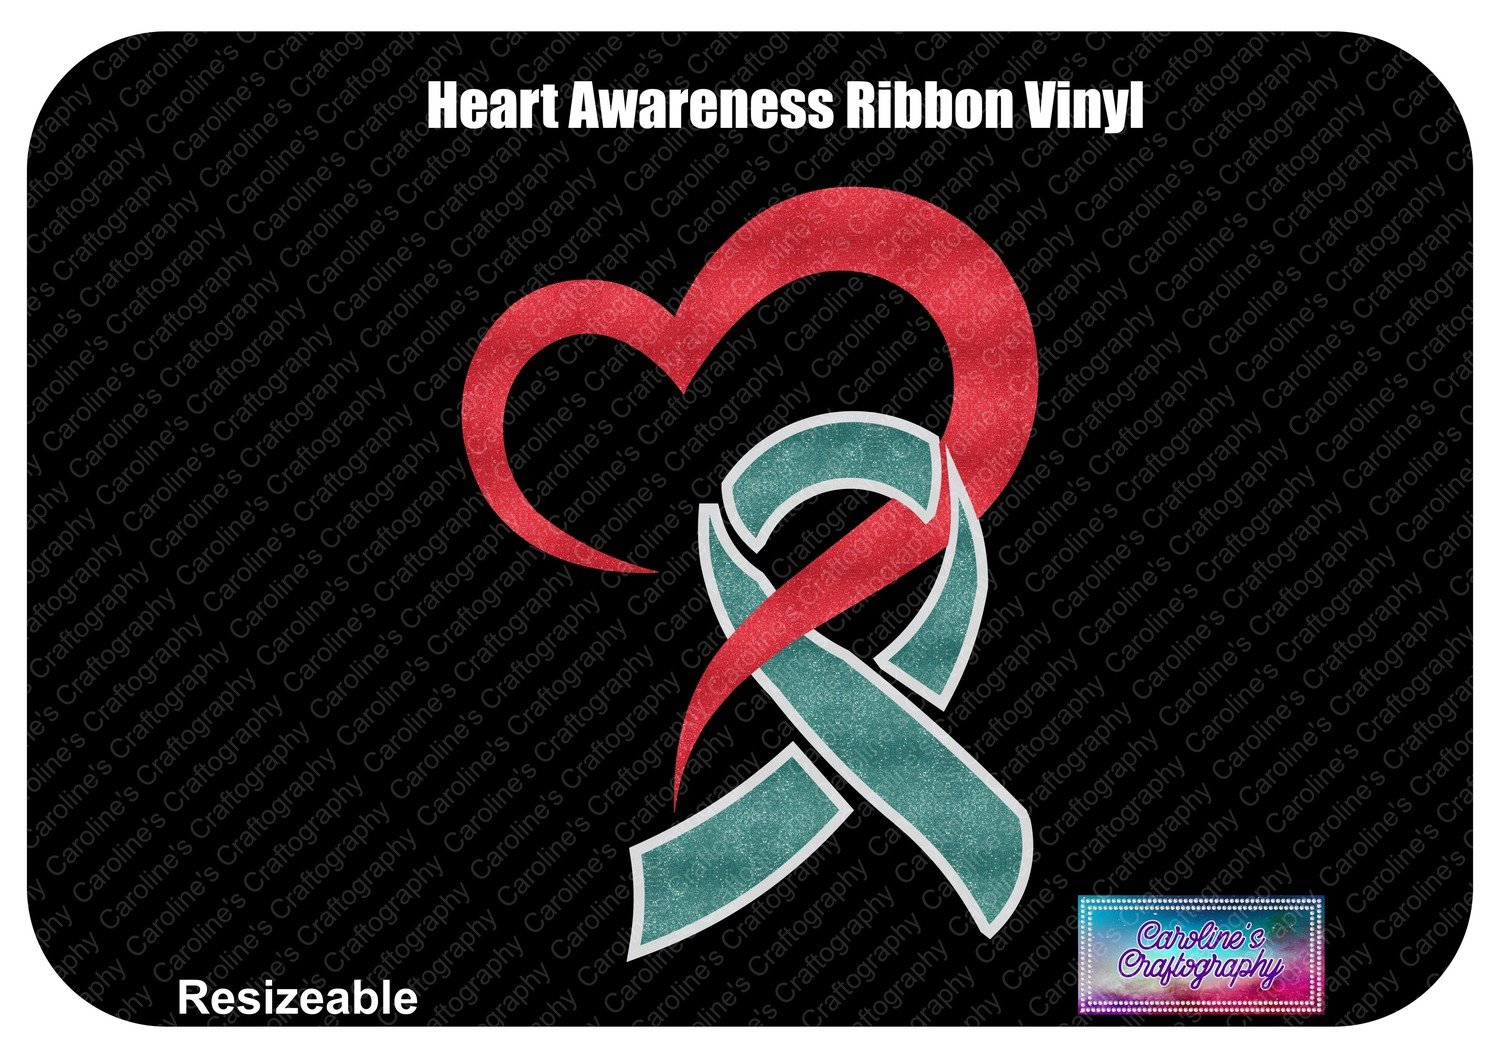 Heart Awareness Ribbon Vinyl Decal